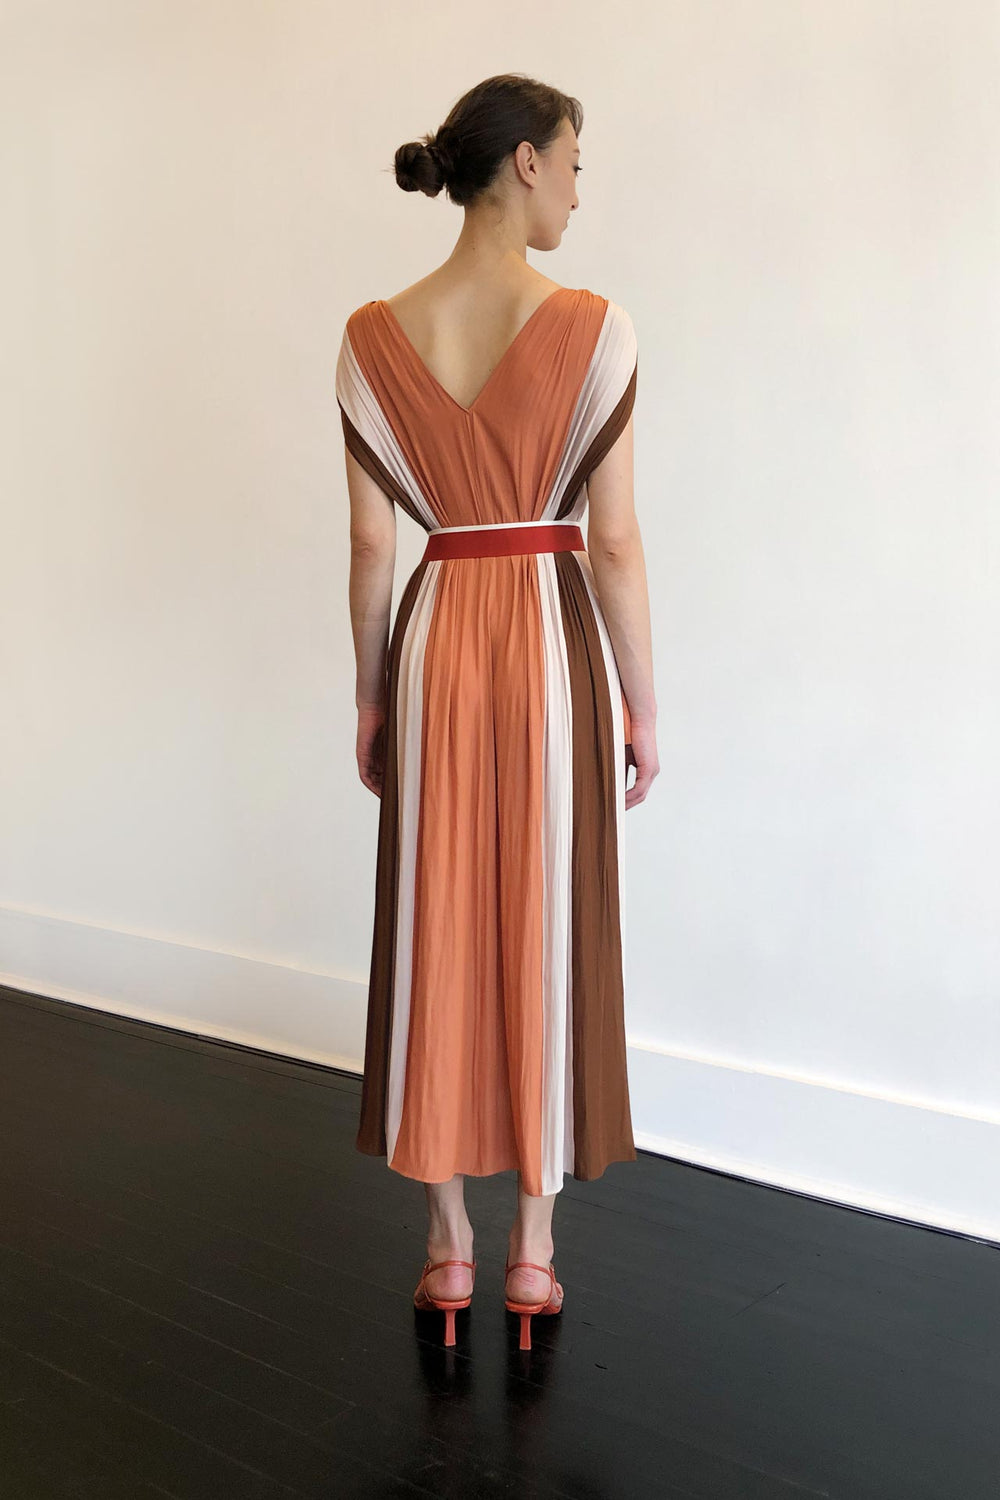 Fashion Designer CARL KAPP collection | Bel Air Onesize Fits All Dress Peach | Sydney Australia